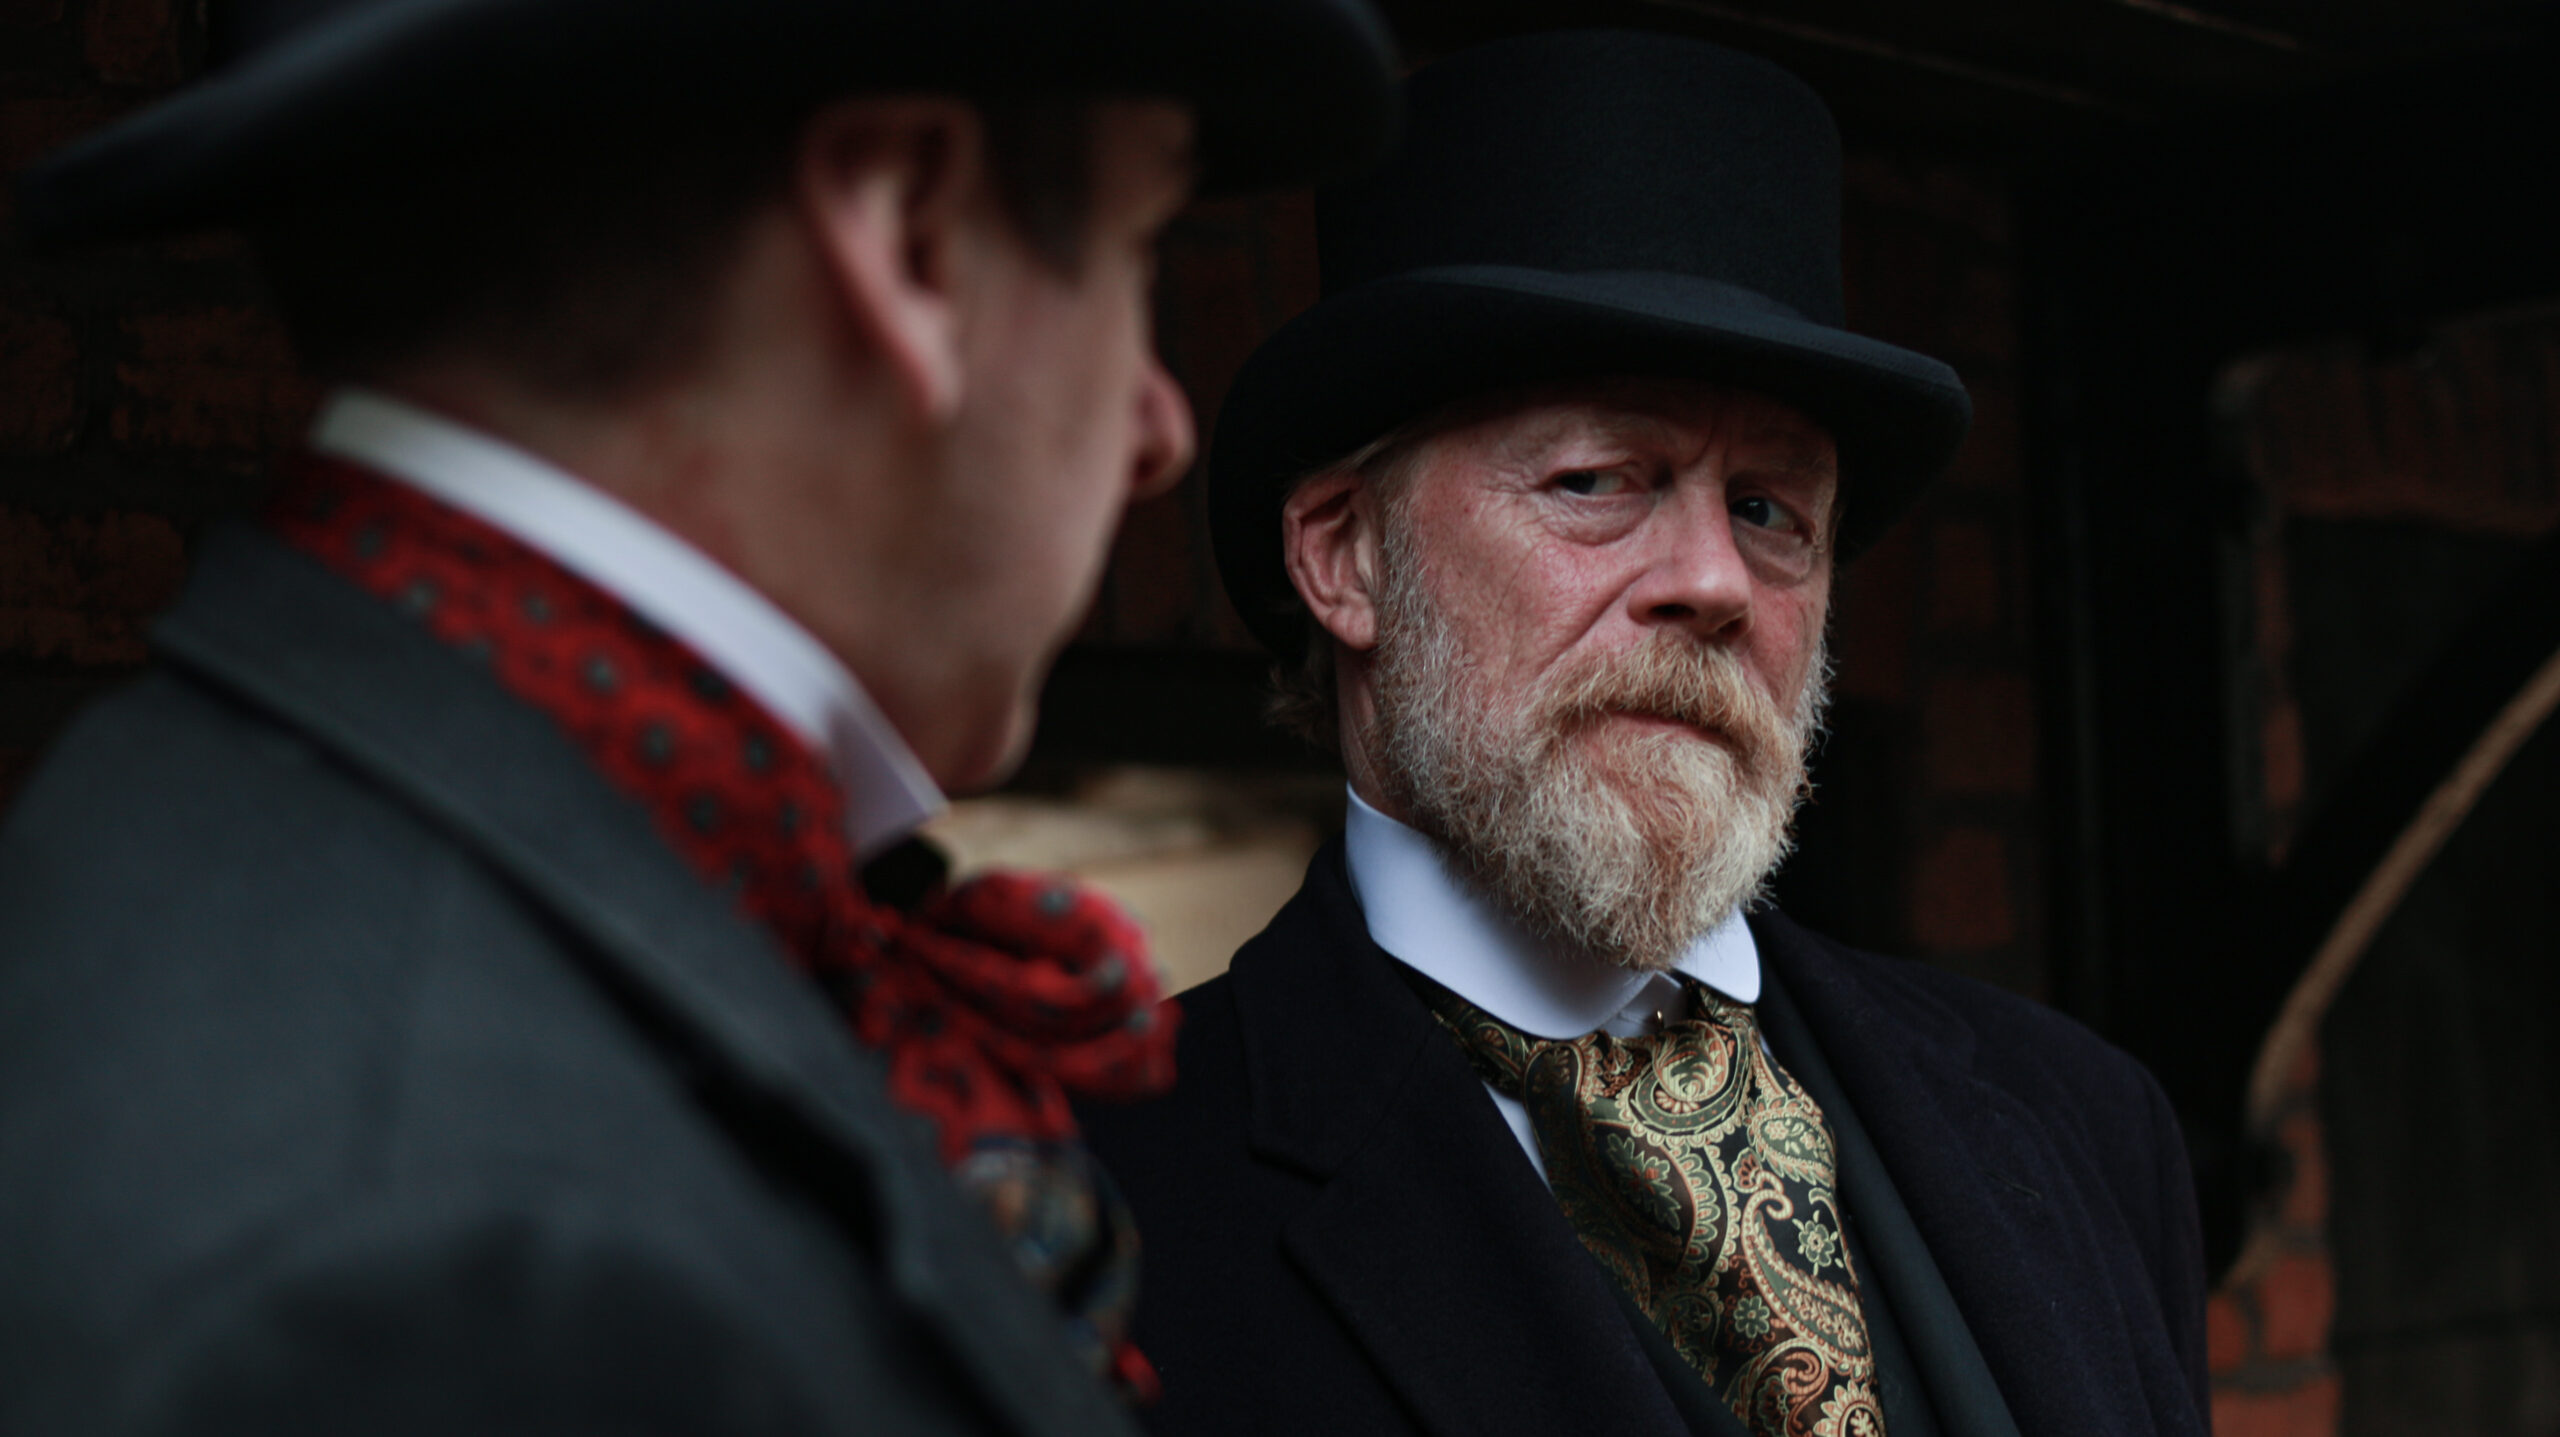 Ginificent, a North West-based independent theatre arts company, is preparing to launch its feature film adaptation of Strange Case of Dr Jekyll and Mr Hyde